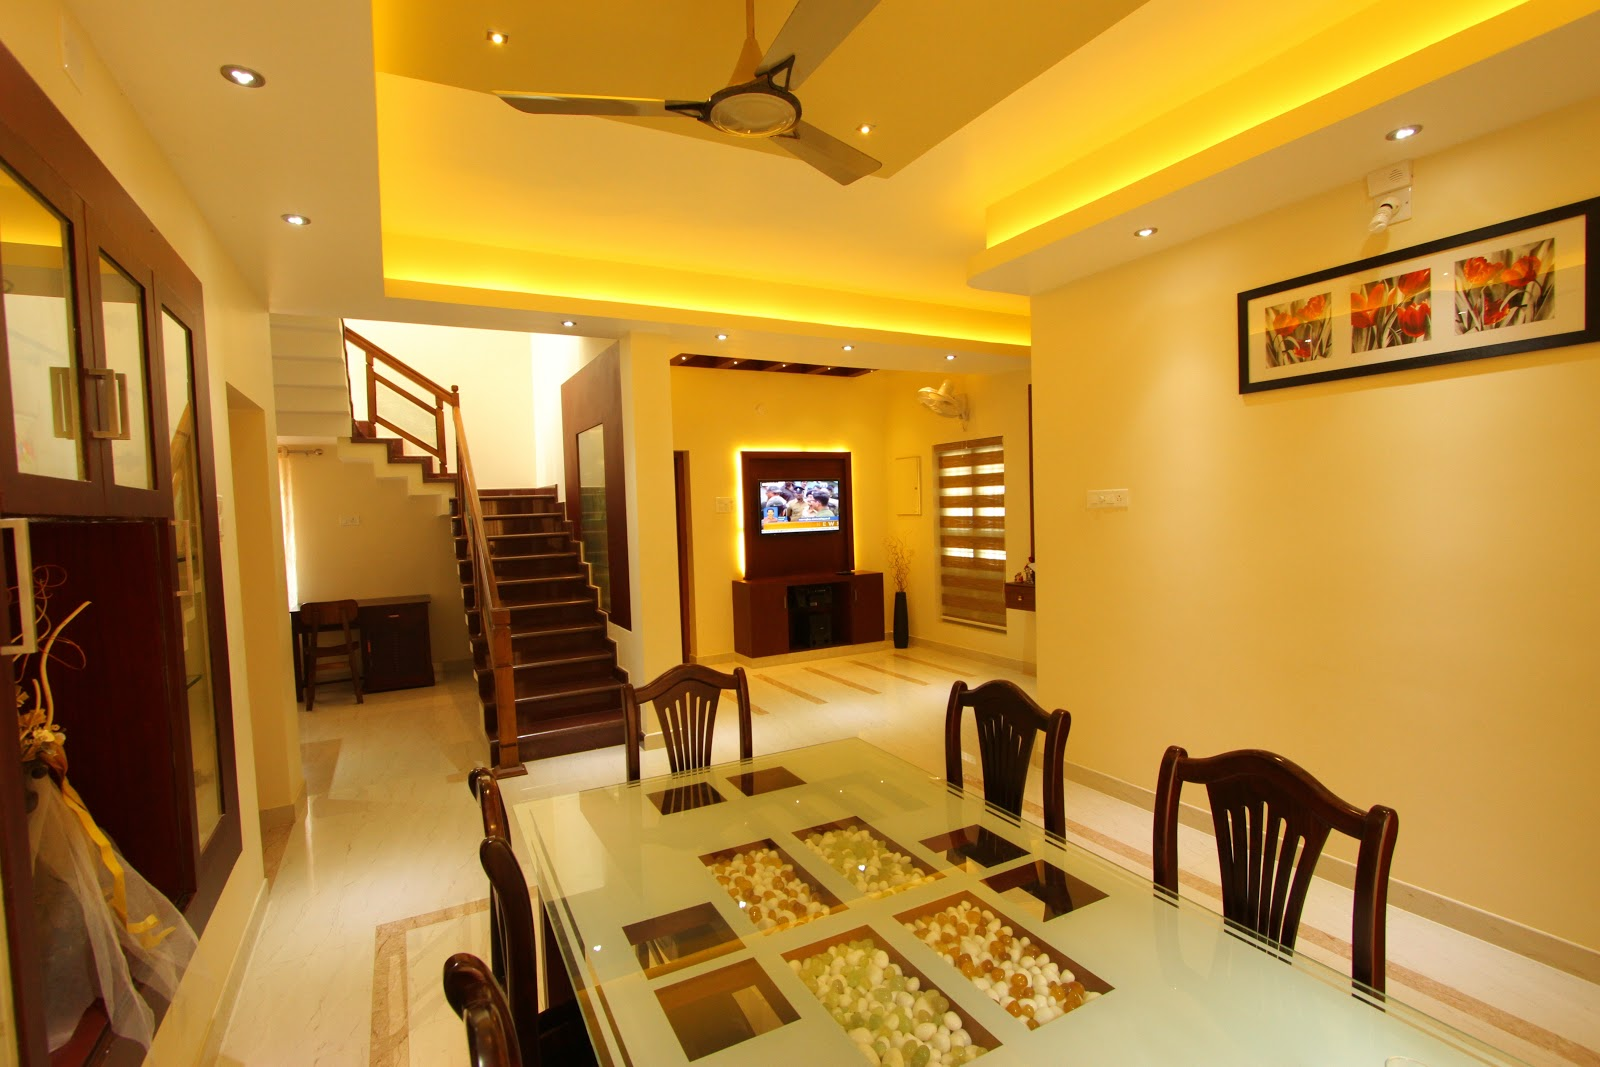 Shilpakala interiors award winning home interior design for Home interior design hall